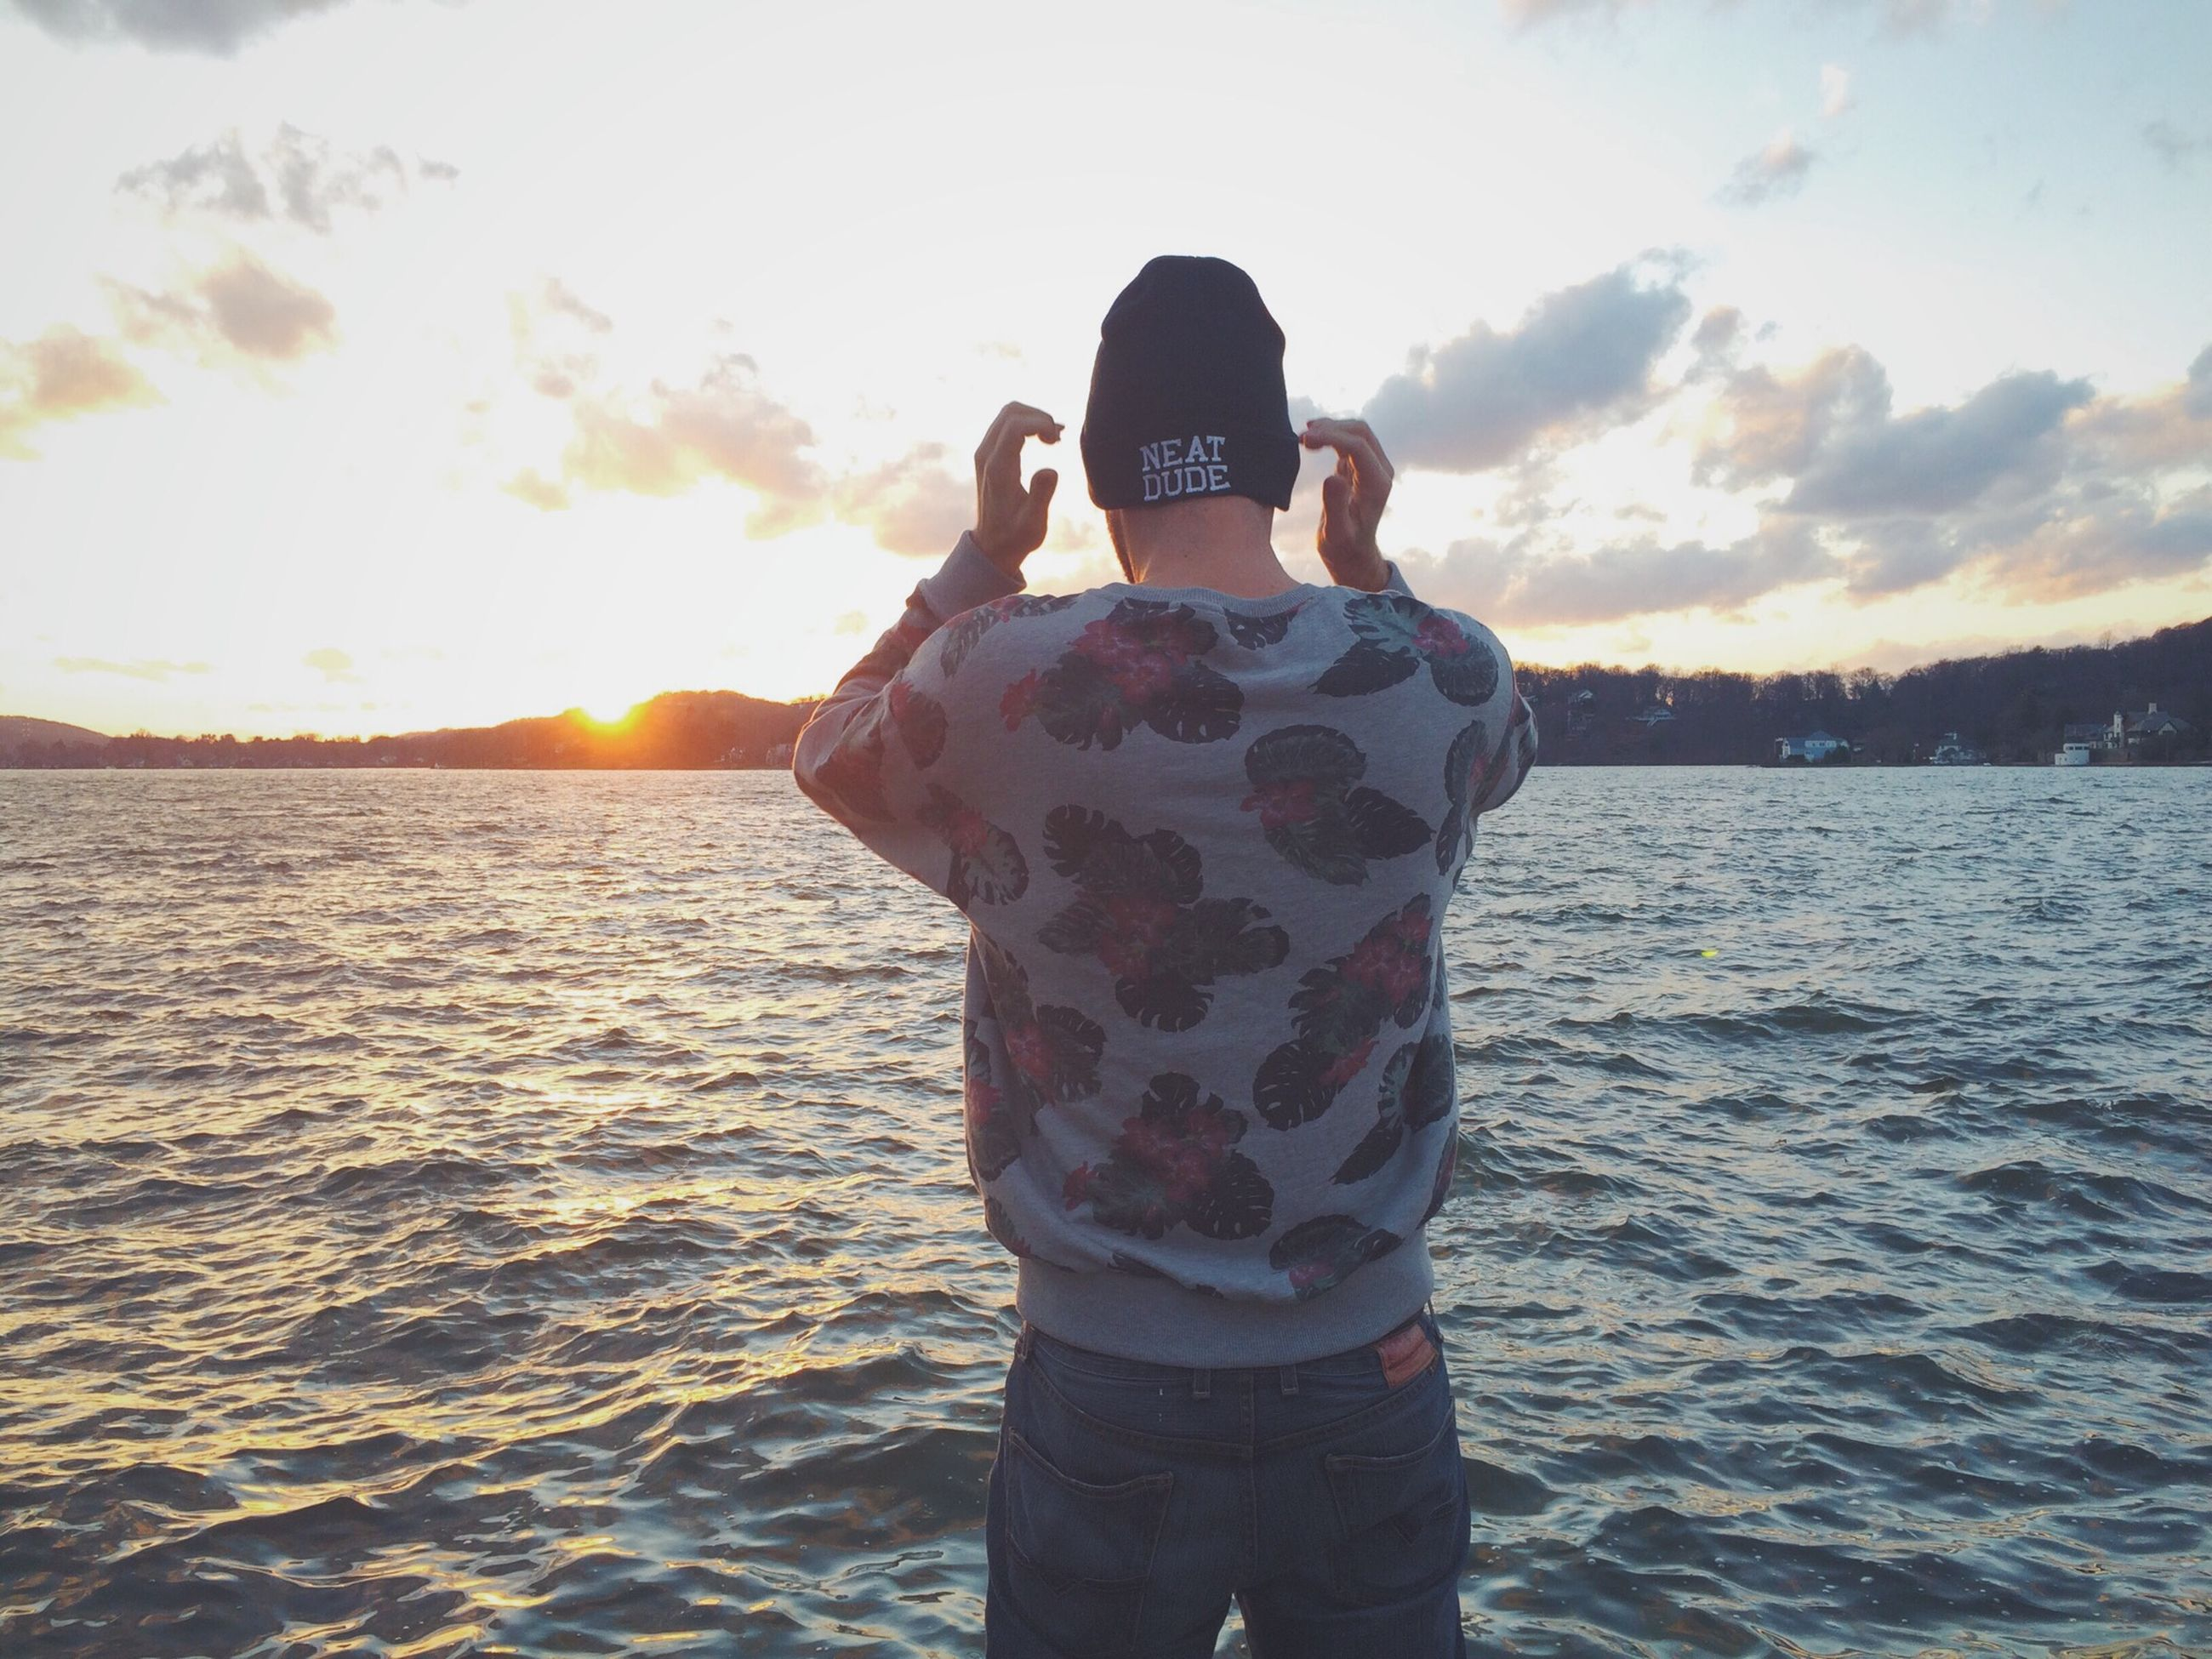 water, sunset, lifestyles, sky, leisure activity, standing, sea, rear view, three quarter length, tranquil scene, scenics, tranquility, beauty in nature, men, nature, cloud - sky, casual clothing, sun